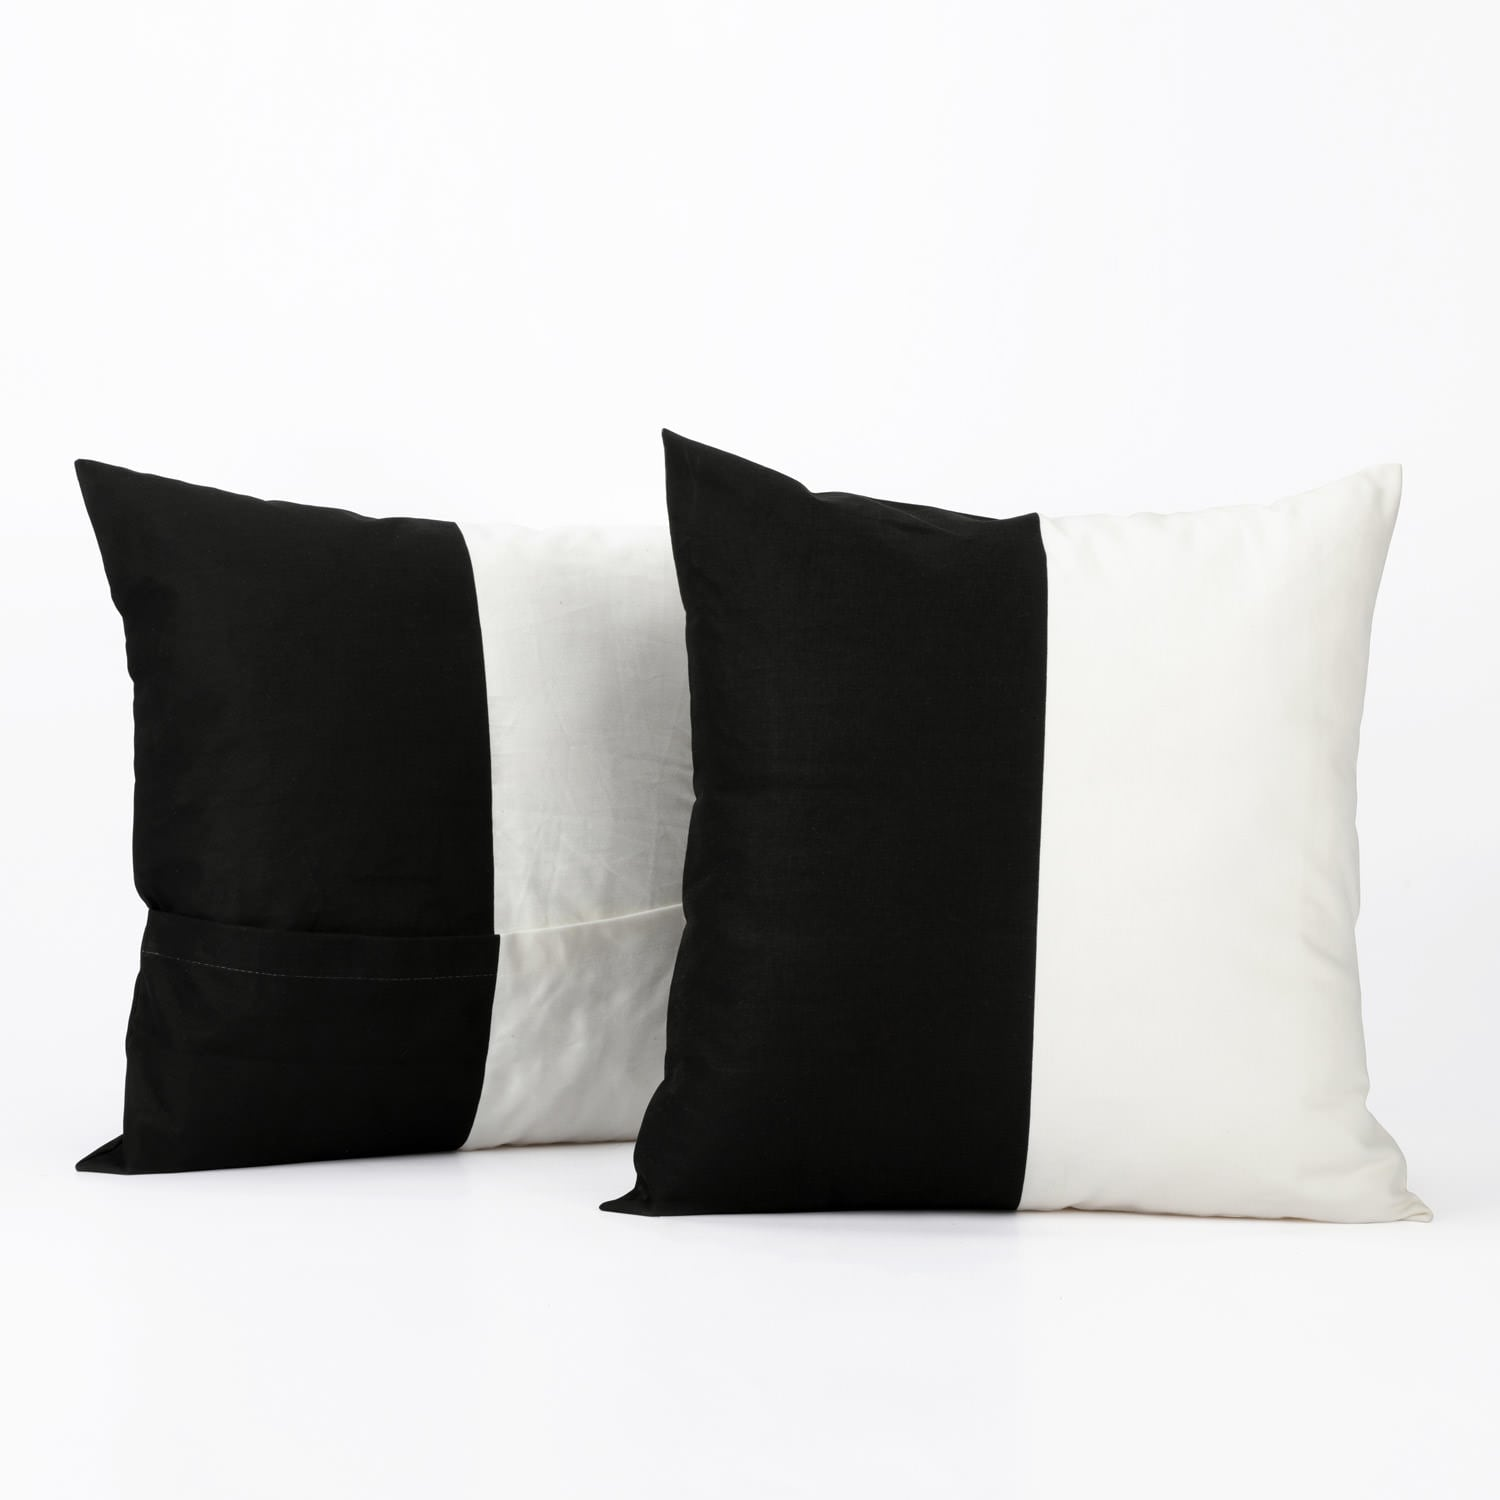 Onyx Black & Off White Horizontal Stripe Cotton Cushion Covers - PAIR